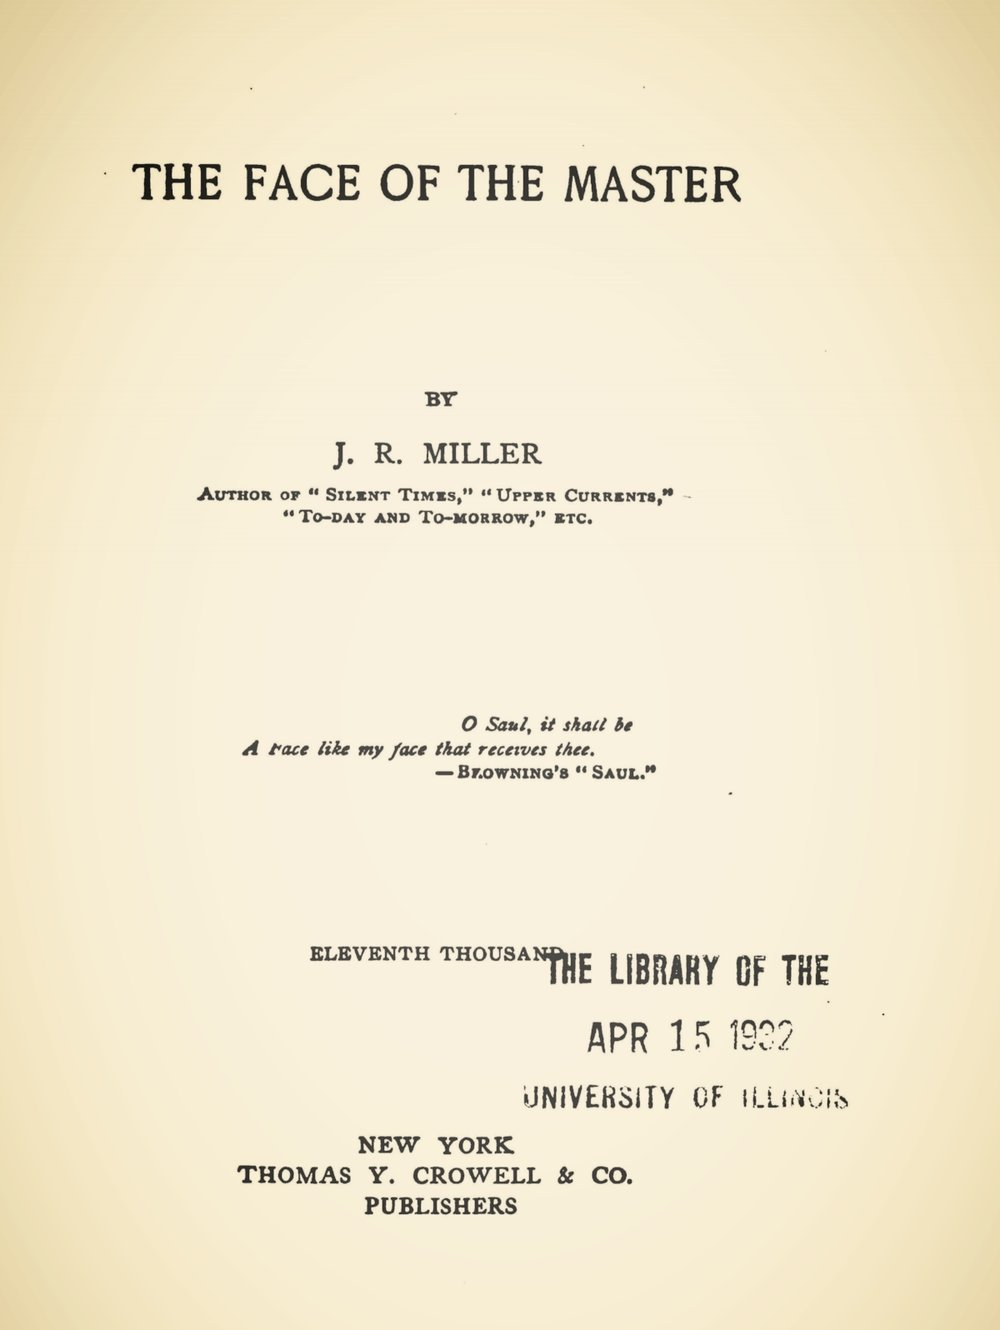 Miller, James Russell, The Face of the Master Title Page.jpg